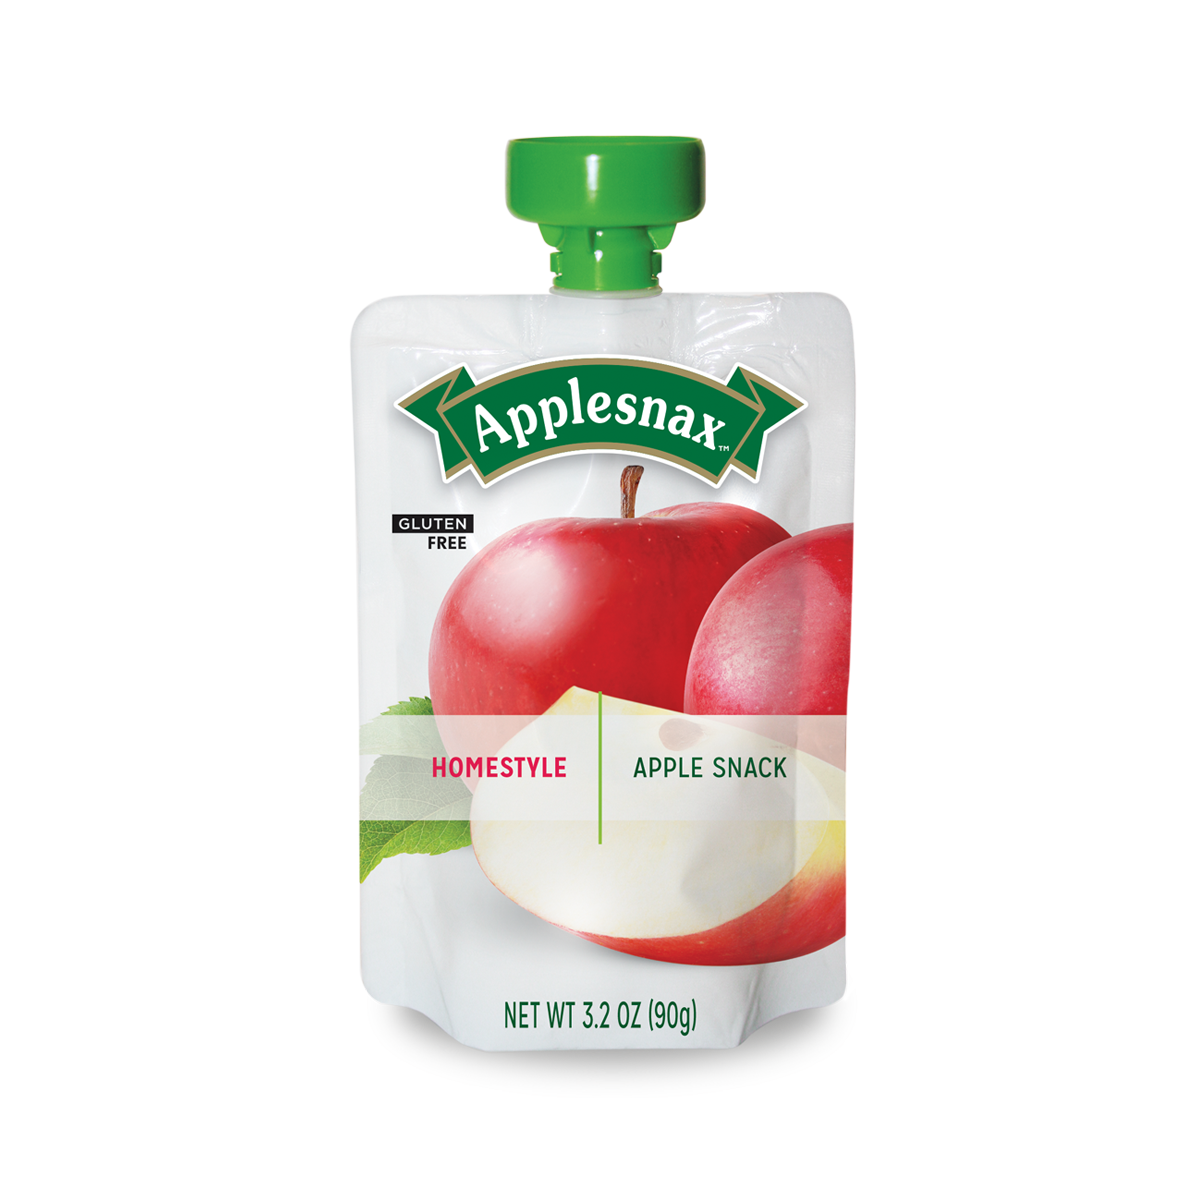 Applesnax Homestyle Applesauce Pouches